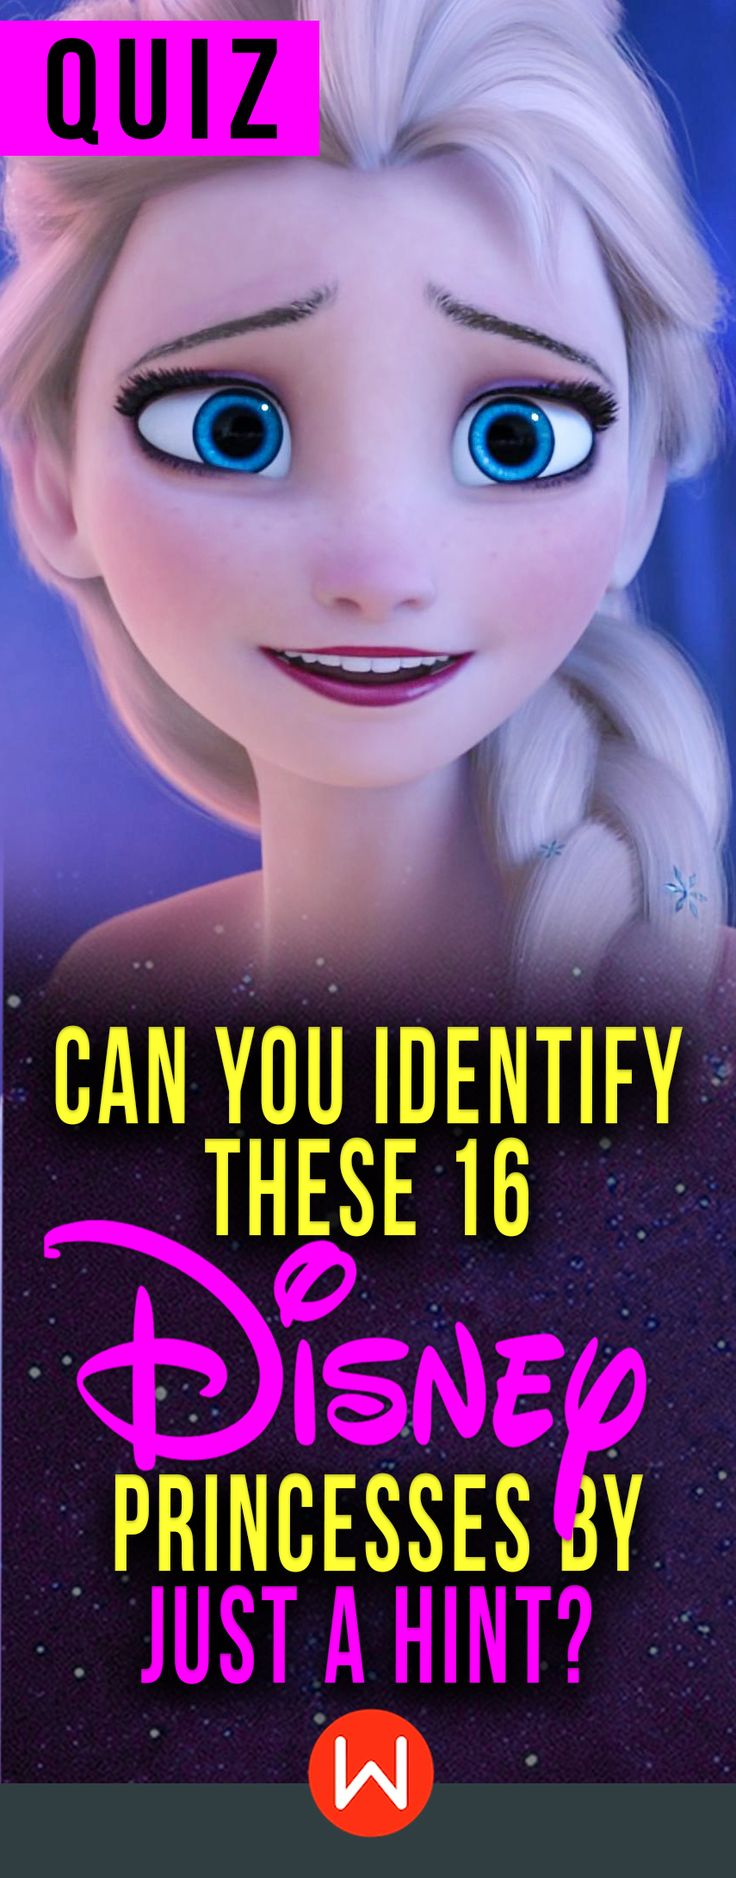 Disney Quiz: Can you name the Disney Princess just by a hint? Let's see if you a Disney expert. Disney test, Disney knowledge test, Disney trivia question, Disney princesses game.